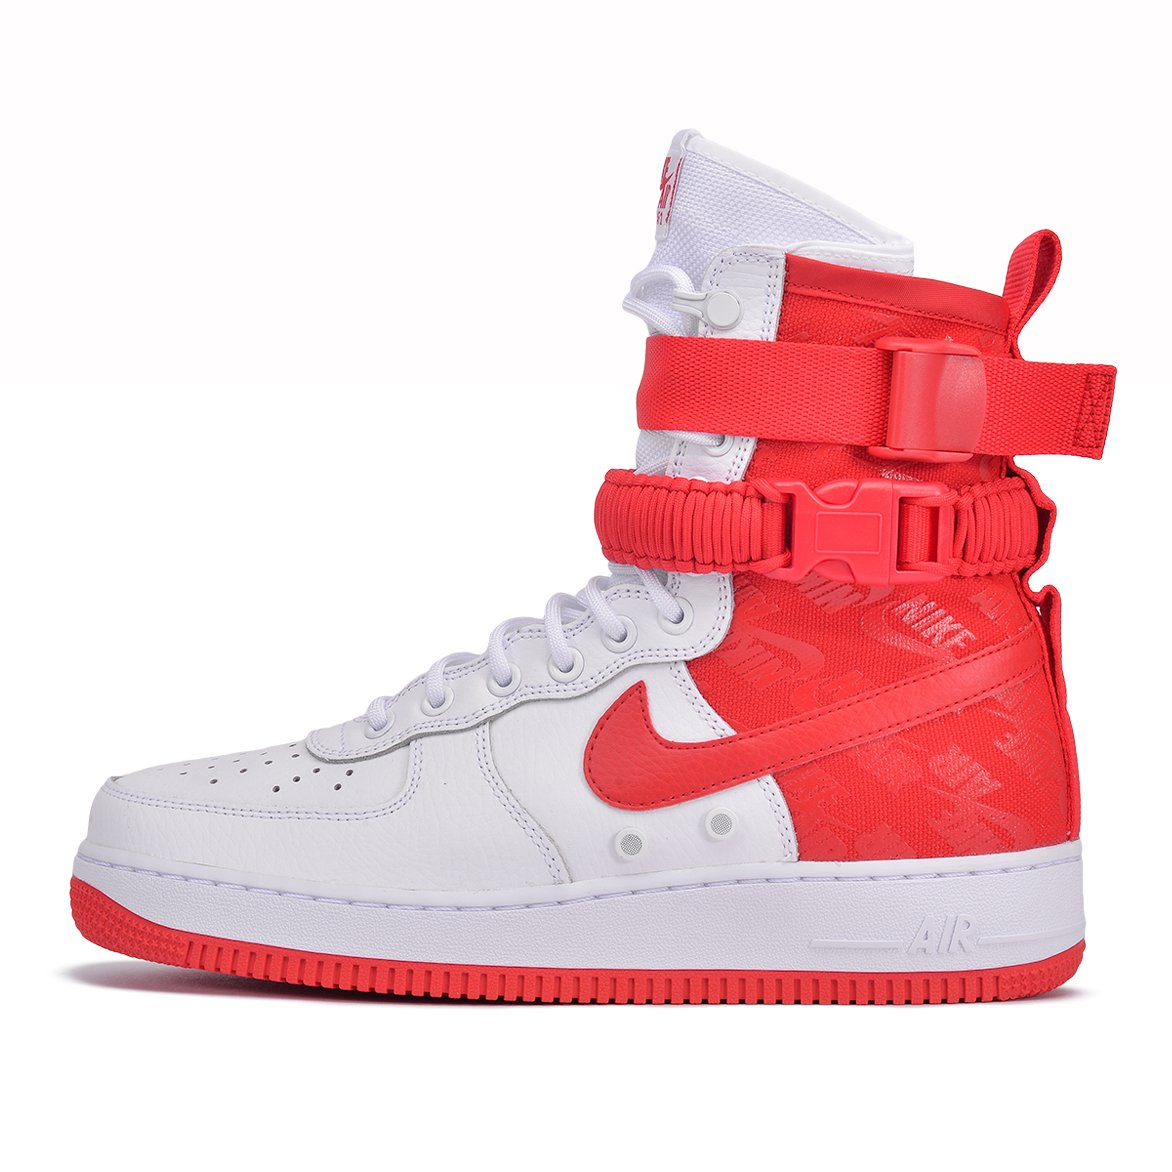 SF Air Force 1 High 'University Red' AR1955 100